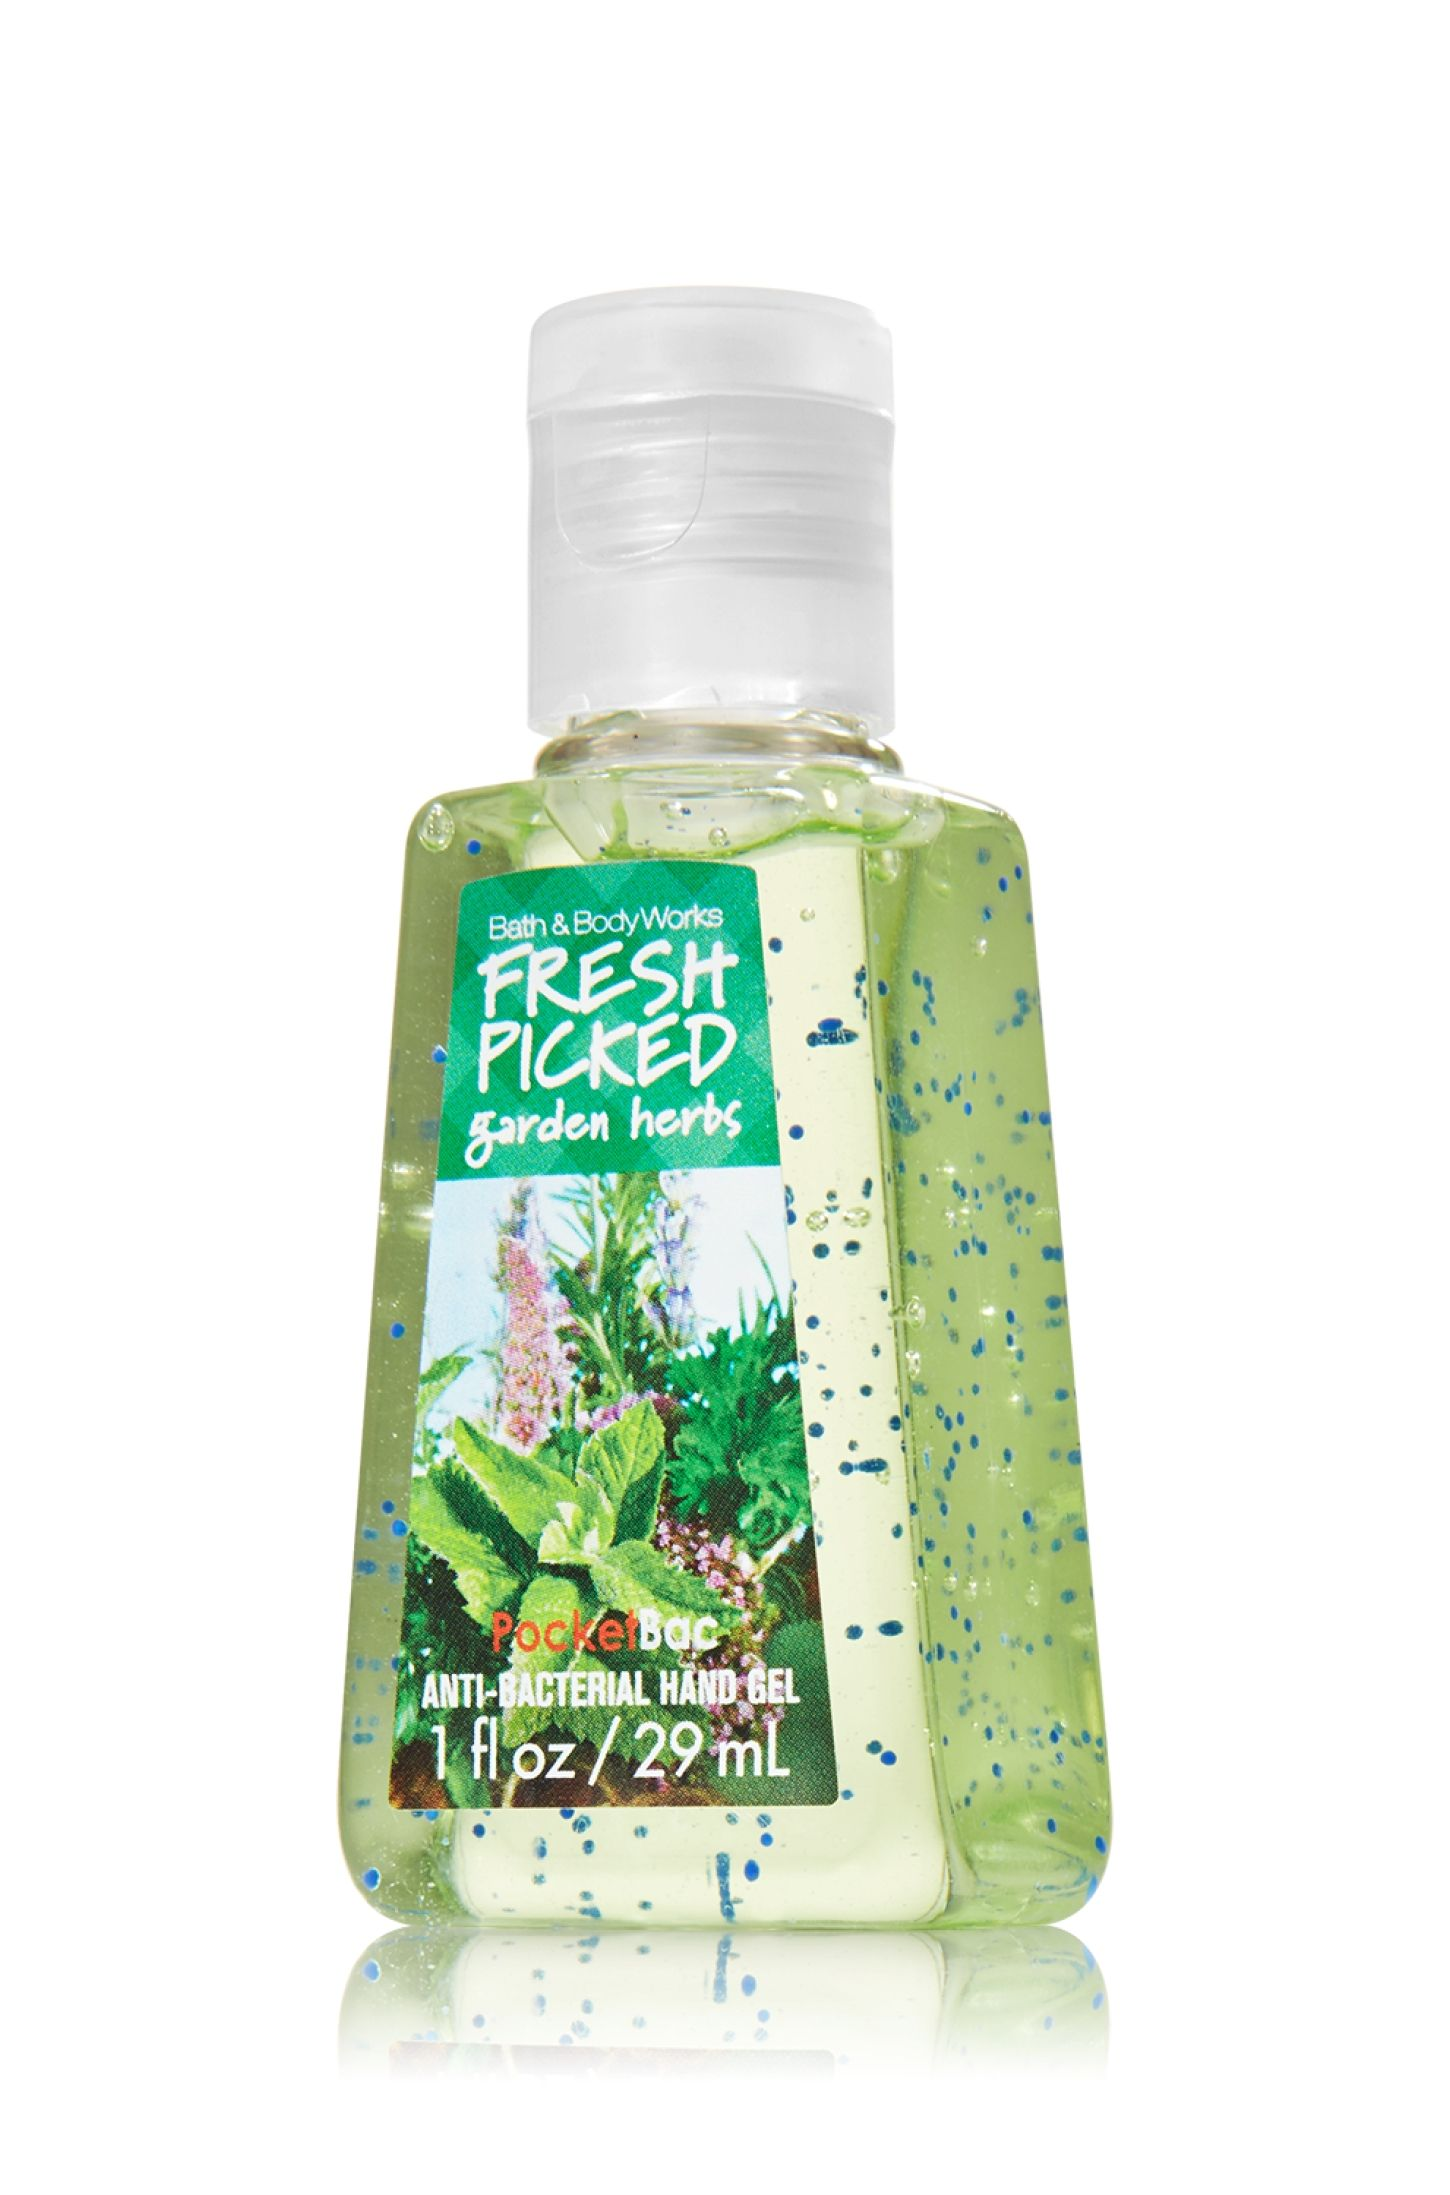 Fresh Picked Garden Herbs Pocketbac Sanitizing Hand Gel Anti